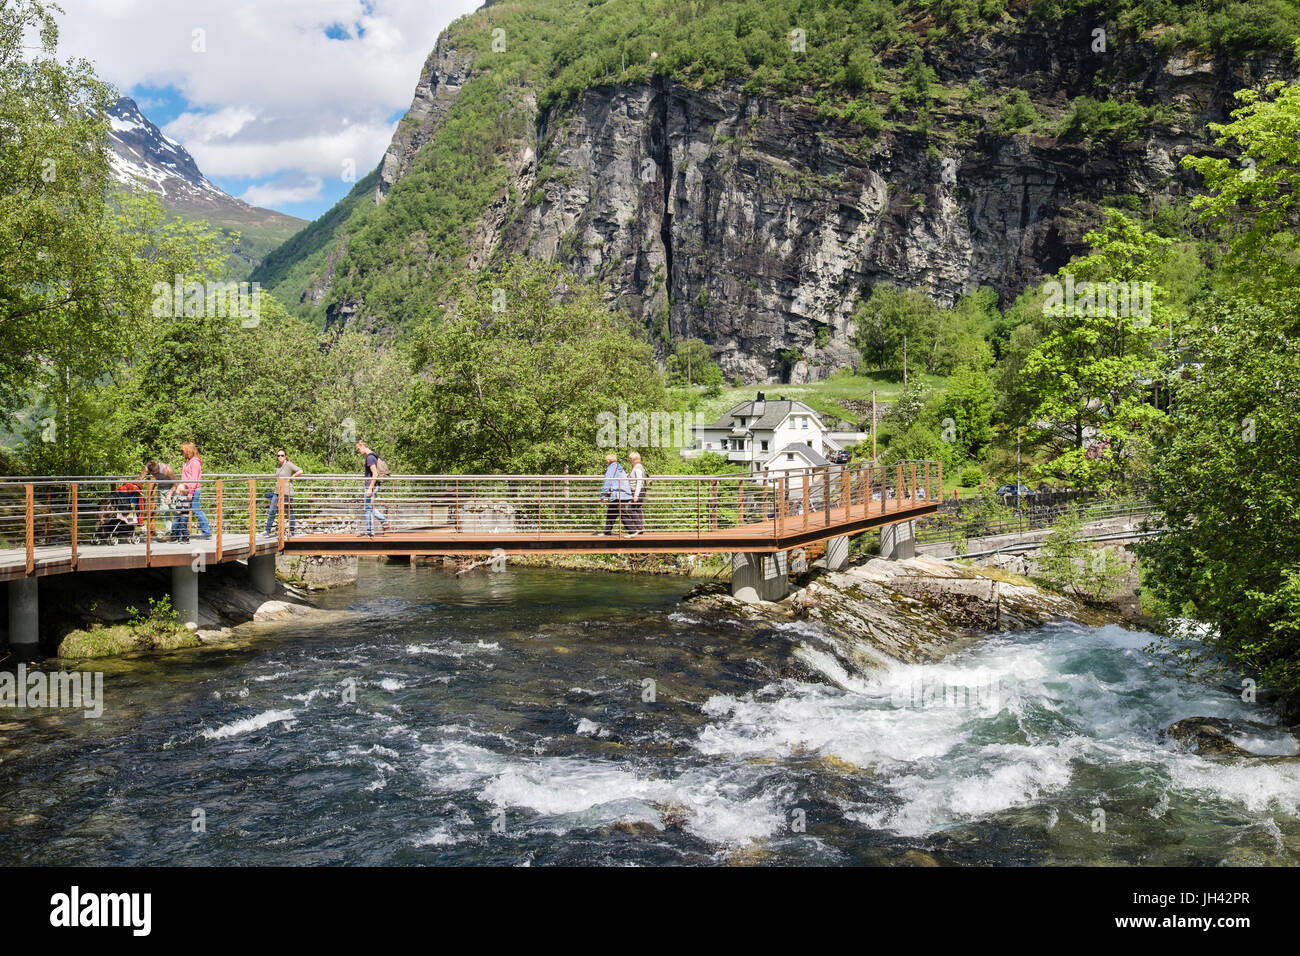 Pedestrian walkway and footbridge over Geirangelva river to village of Geiranger, Sunnmøre region, Møre - Stock Image